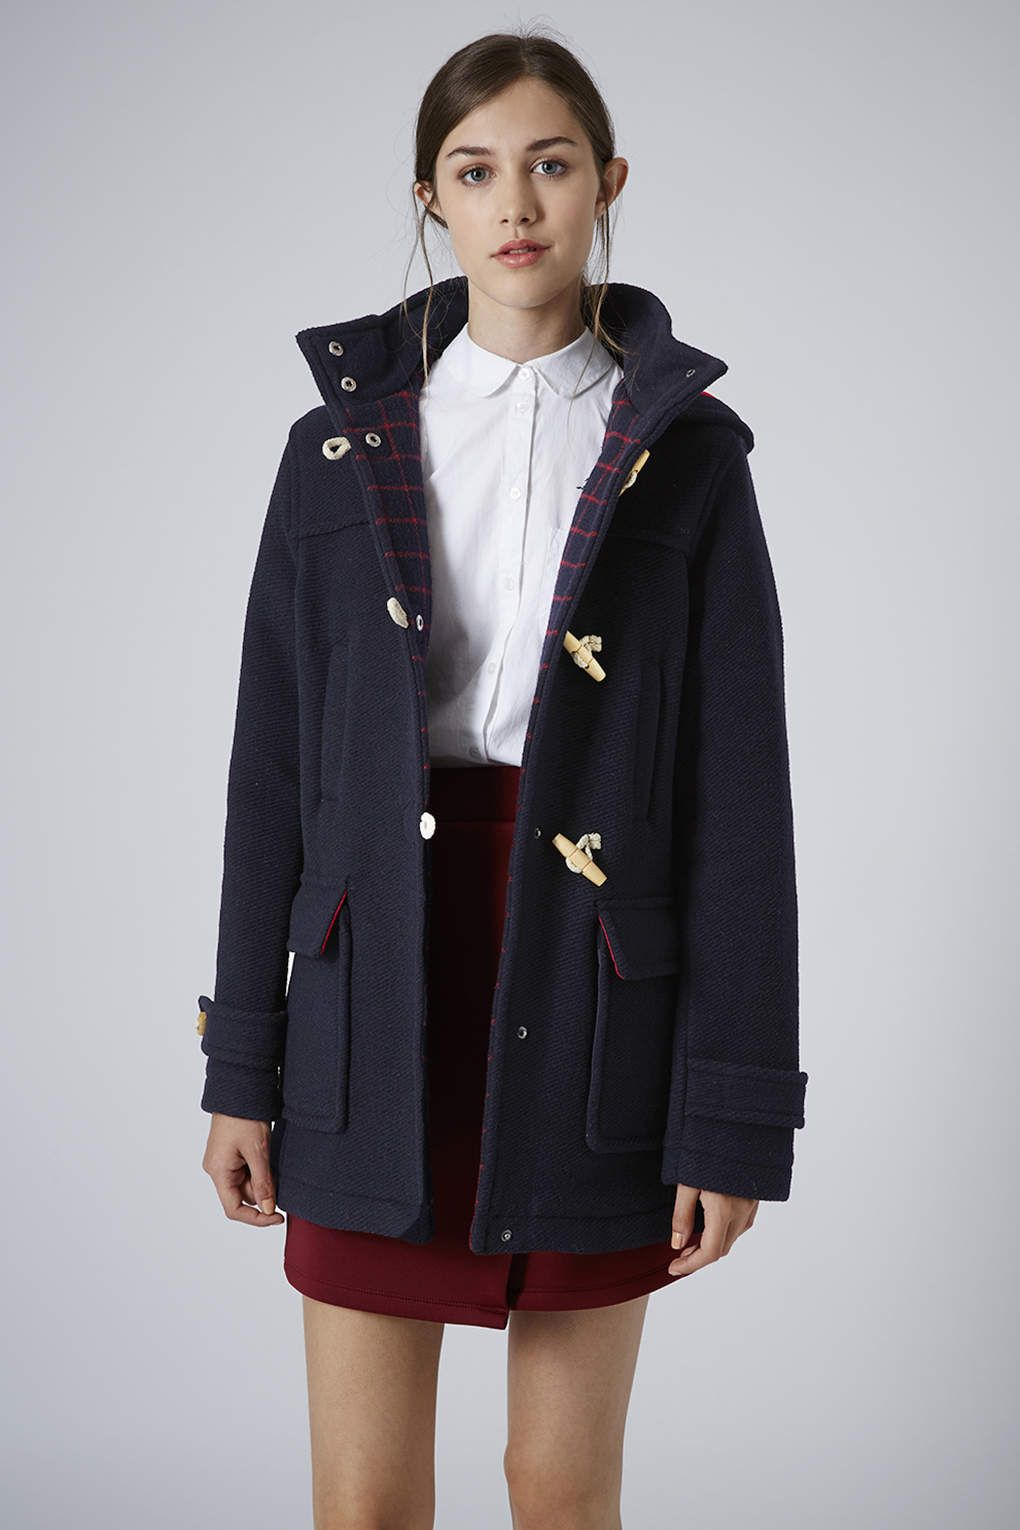 Bound Seam Wool Duffle Coat - Jackets & Coats - Clothing - Topshop ...